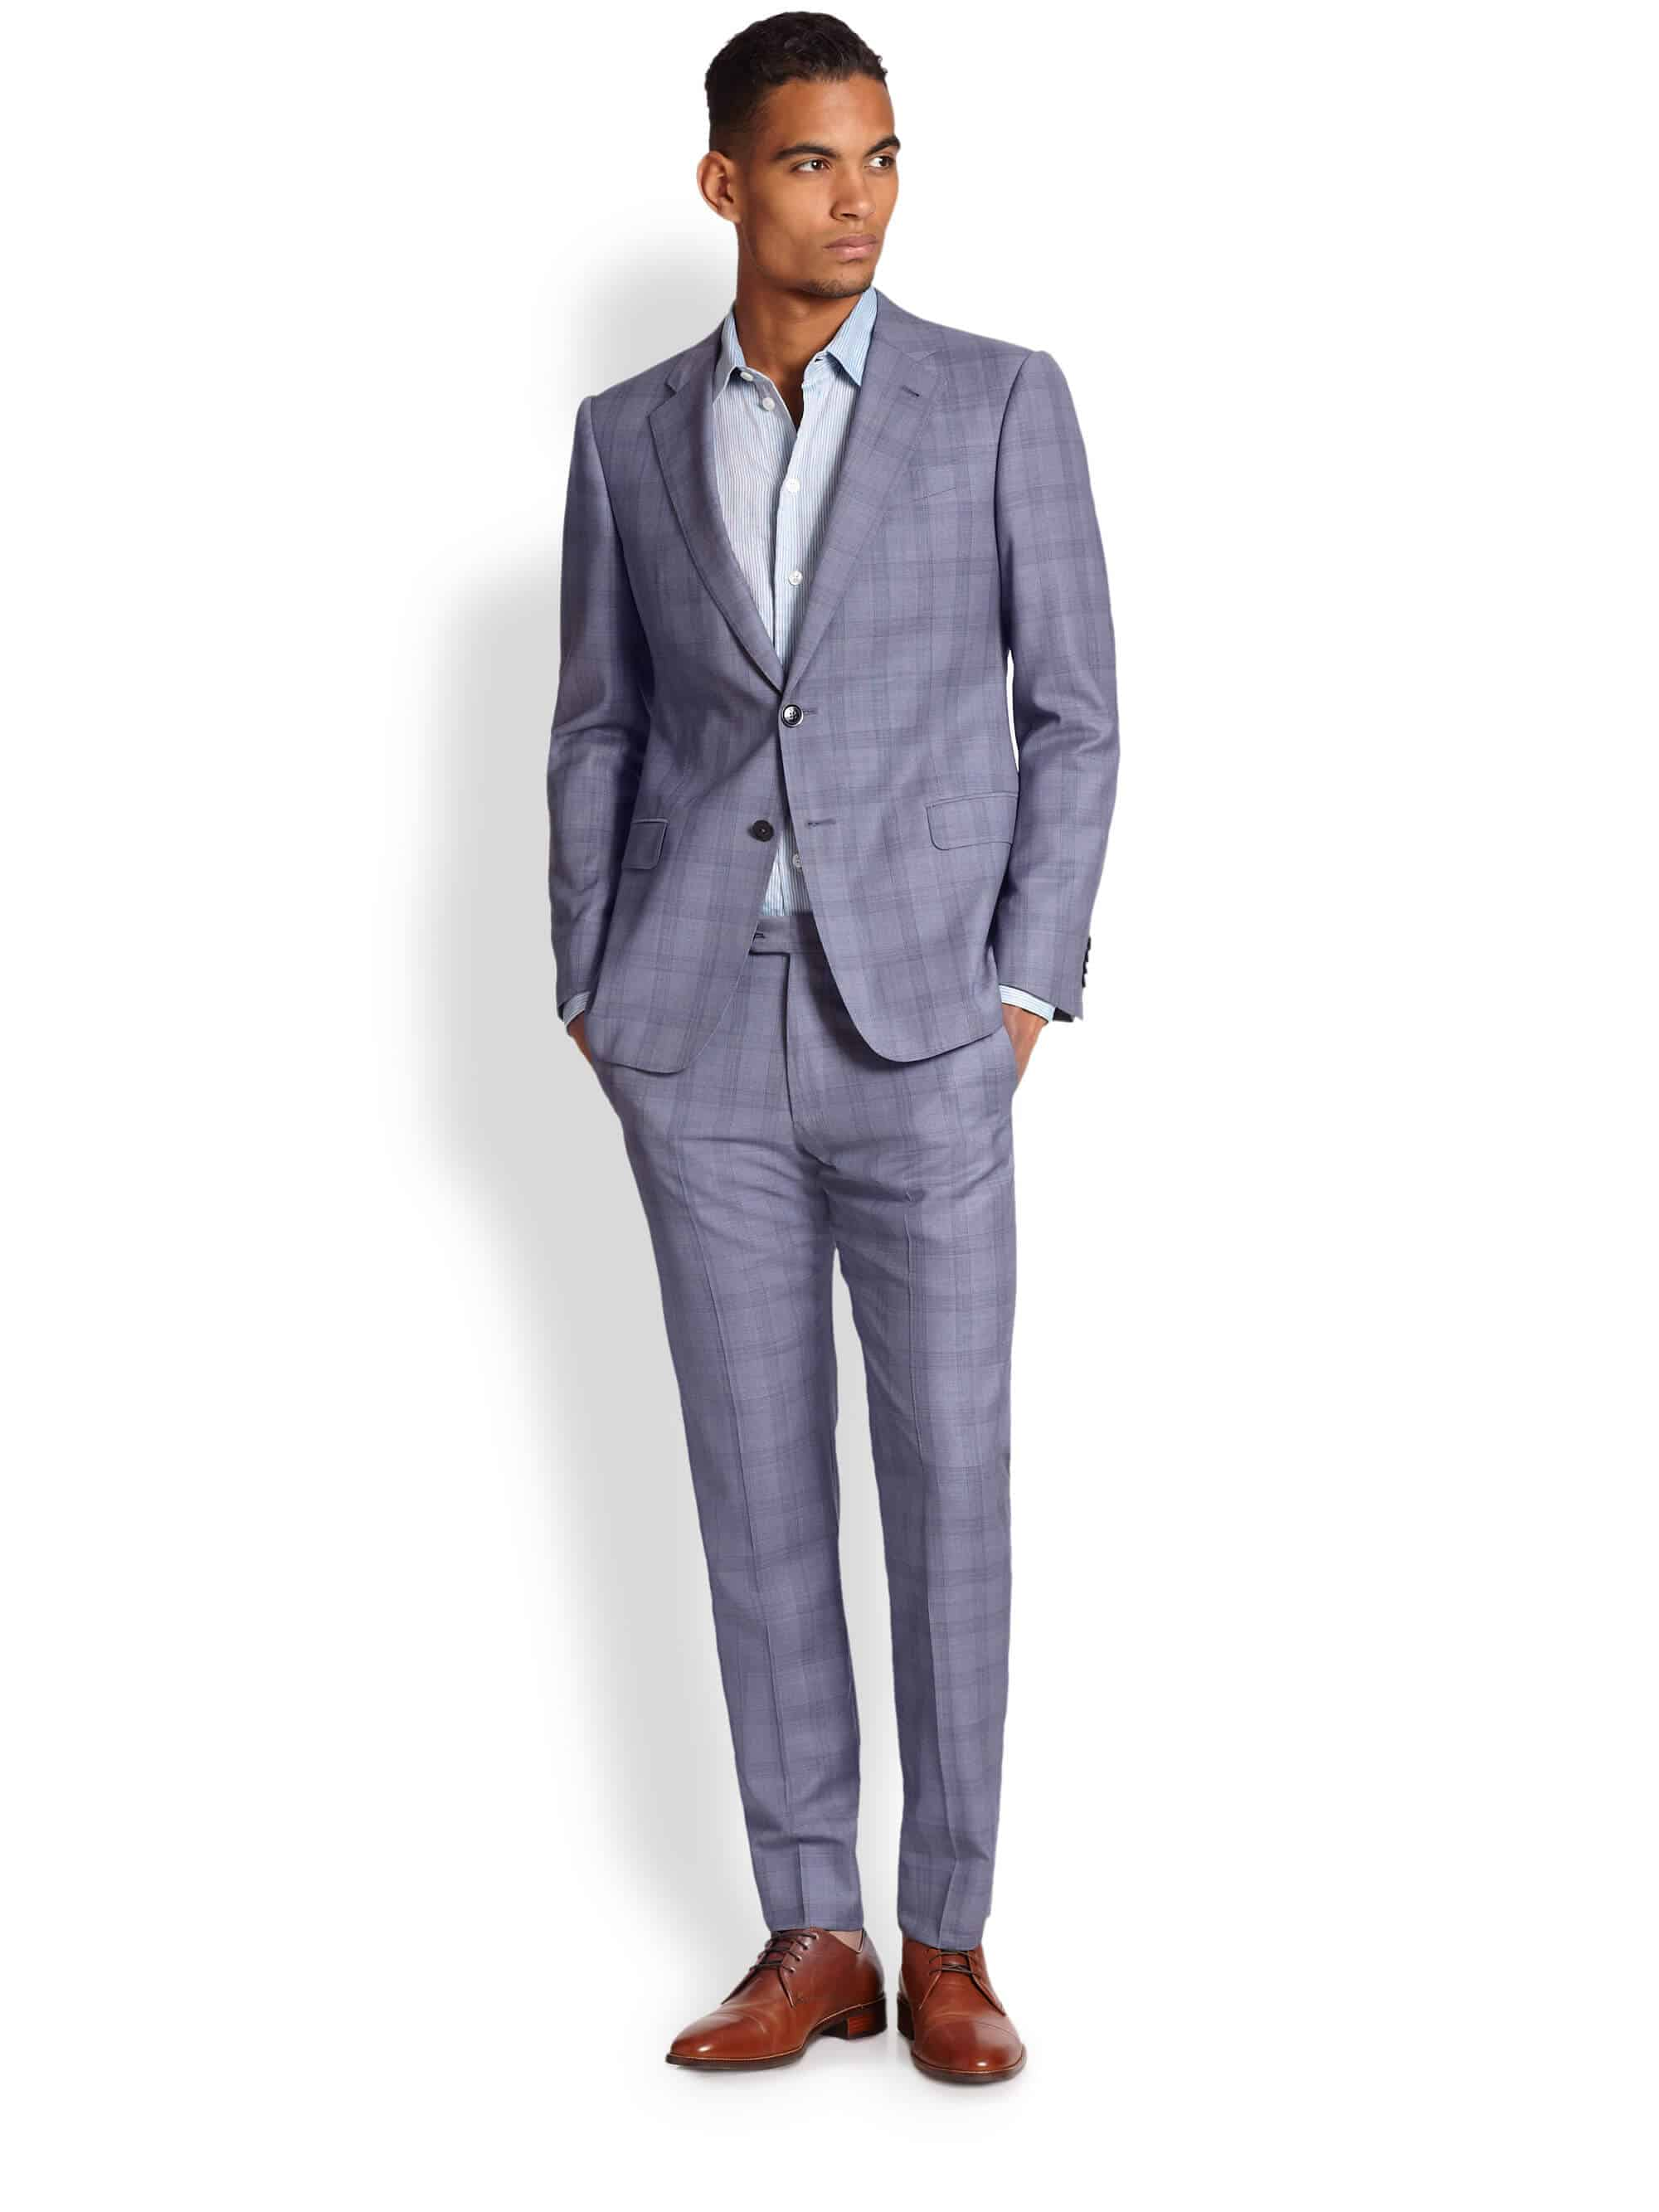 100 Suit Vs 1 000 Suit Differences Cheap Vs Expensive Suits